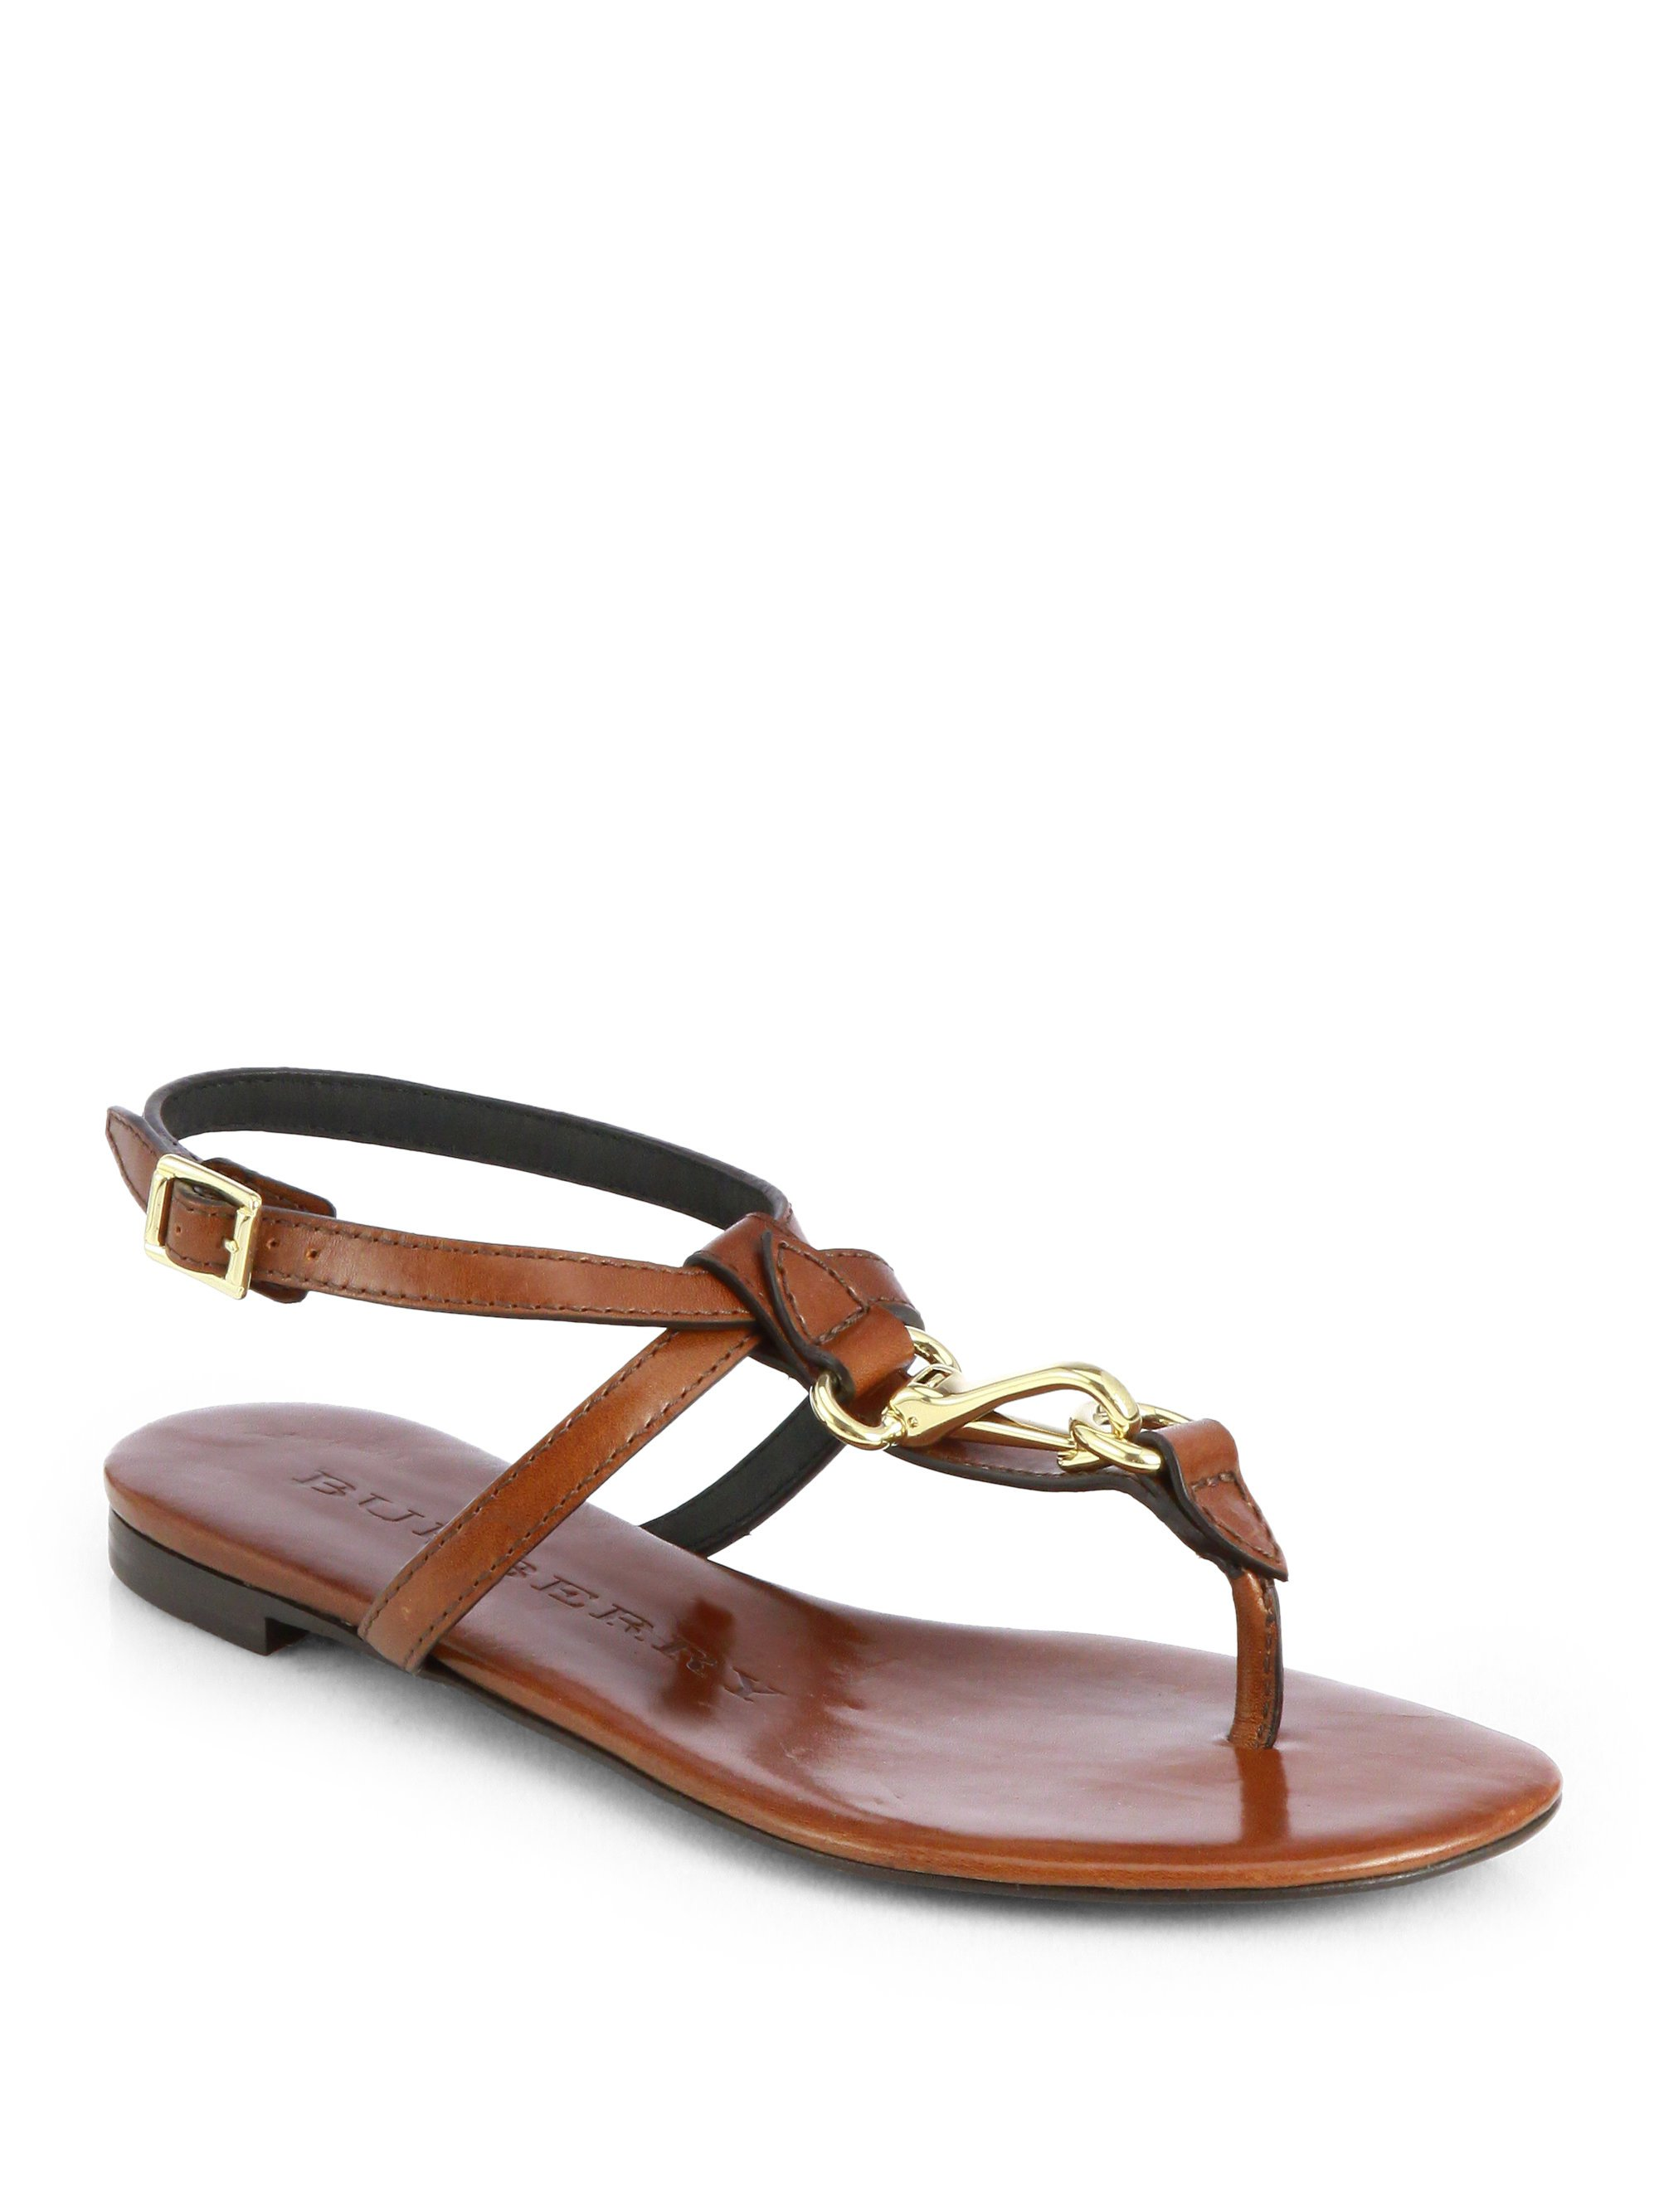 b817233a3c0 Lyst - Burberry Reason Leather Thong Sandals in Brown